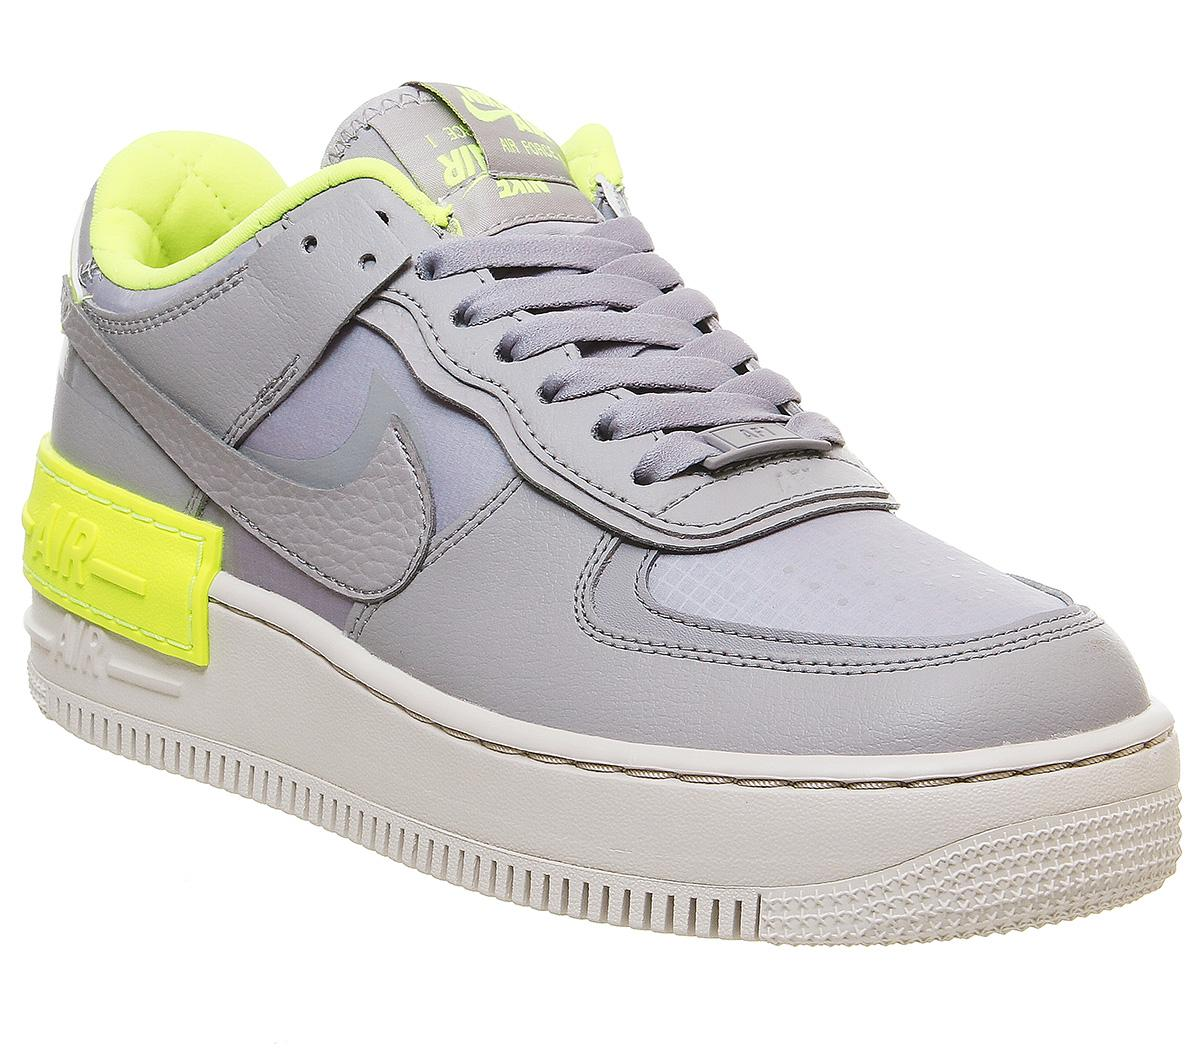 Nike Air Force 1 Shadow Trainers Atmosphere Grey Light Orewood Brown Volt Hers Trainers Dressed in a summit white,flash crimson,dark sulfur and astronomy blue dressed in a atmosphere grey,vast grey and thunder grey color scheme,the nike air force 1 '07 lv8 2 atmosphere grey is a premium version. air force 1 shadow trainers